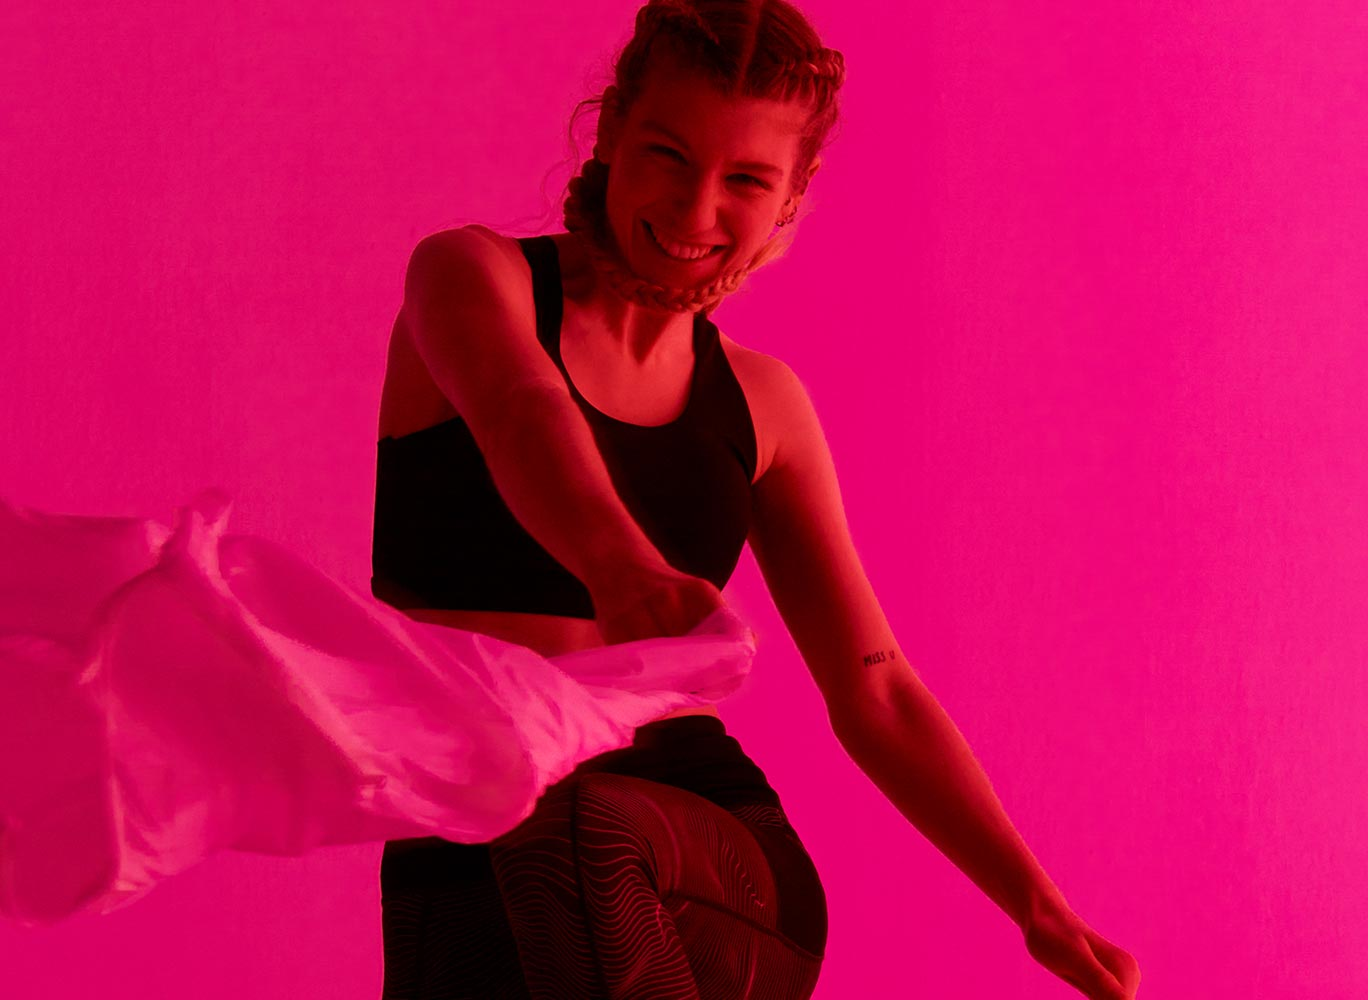 Person in Superdry clothing looking directly at camera lens with pink background